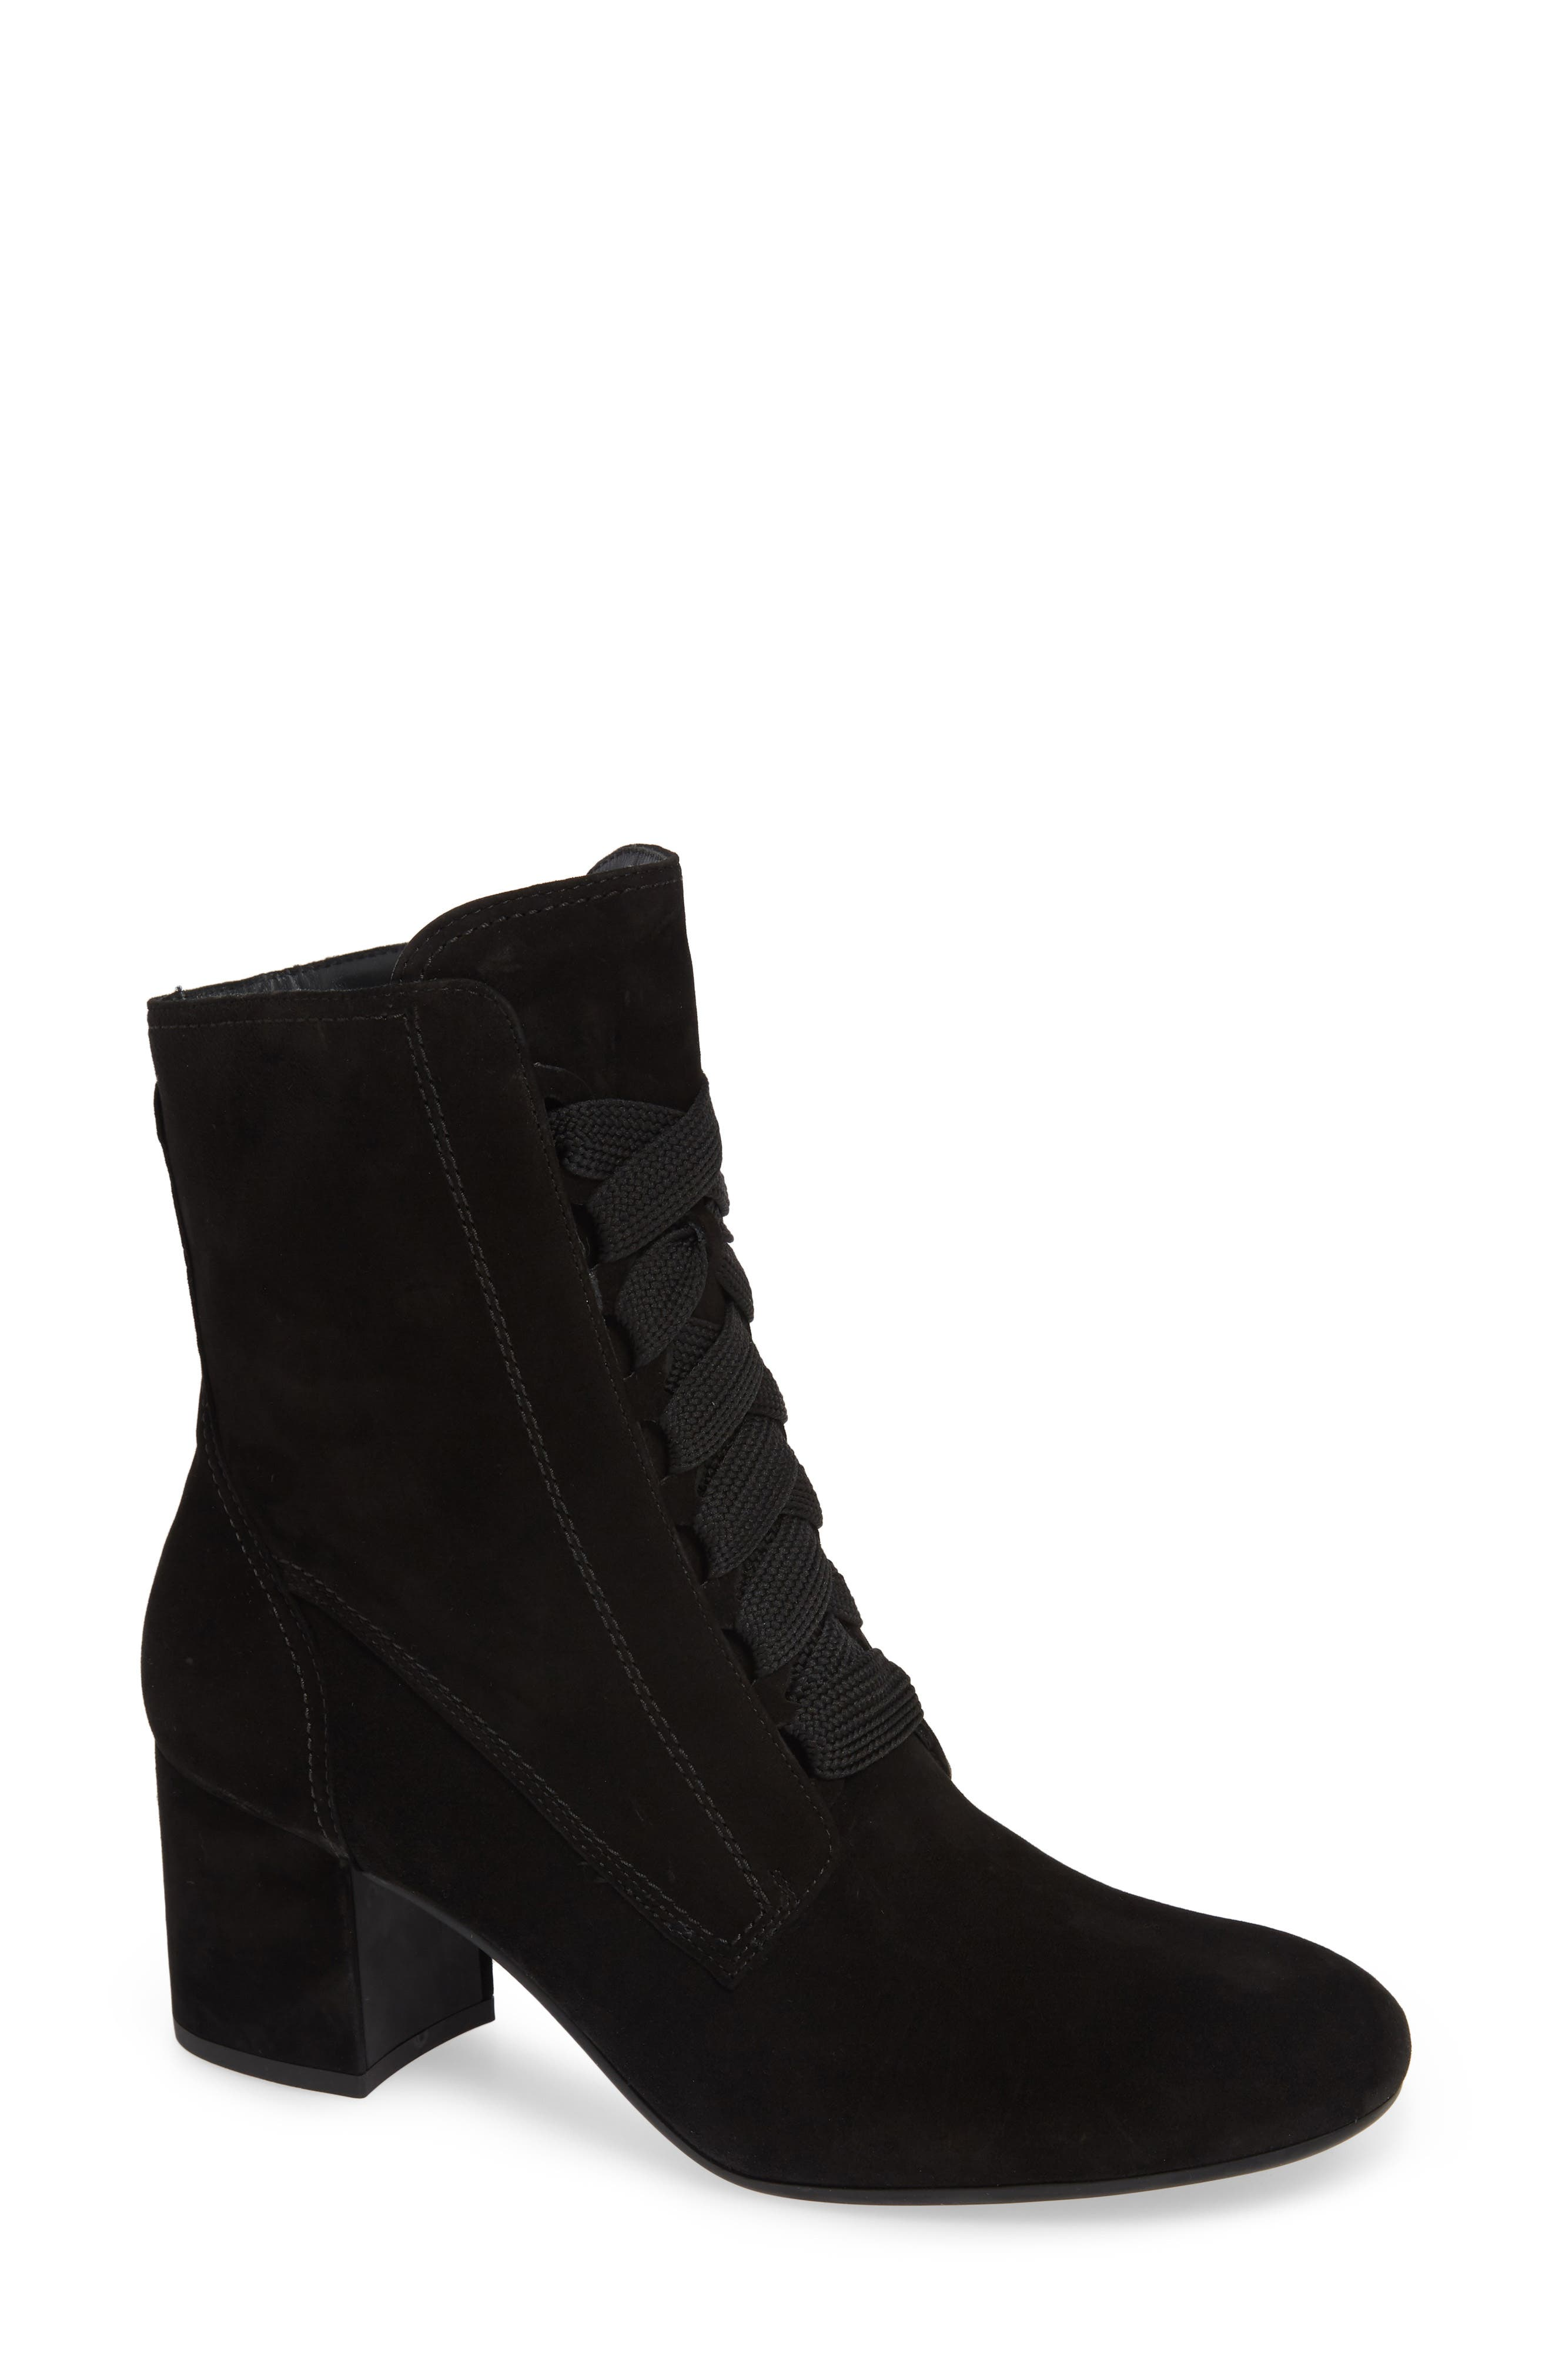 PAUL GREEN Tracy Lace-Up Bootie in Black Suede